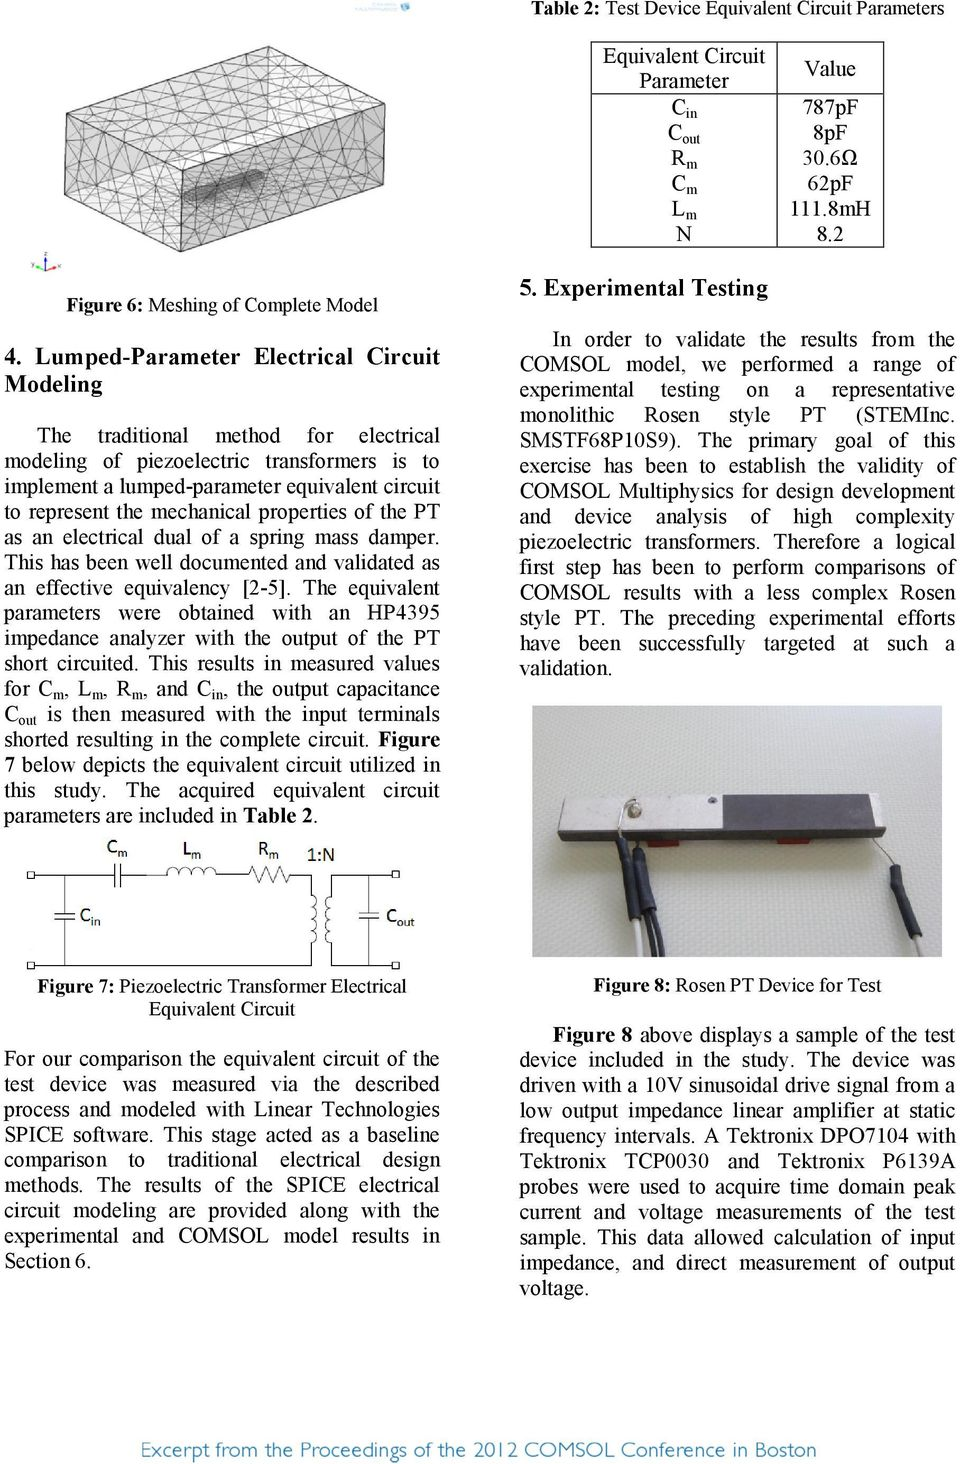 mechanical properties of the PT as an electrical dual of a spring mass damper. This has been well documented and validated as an effective equivalency [2-5].